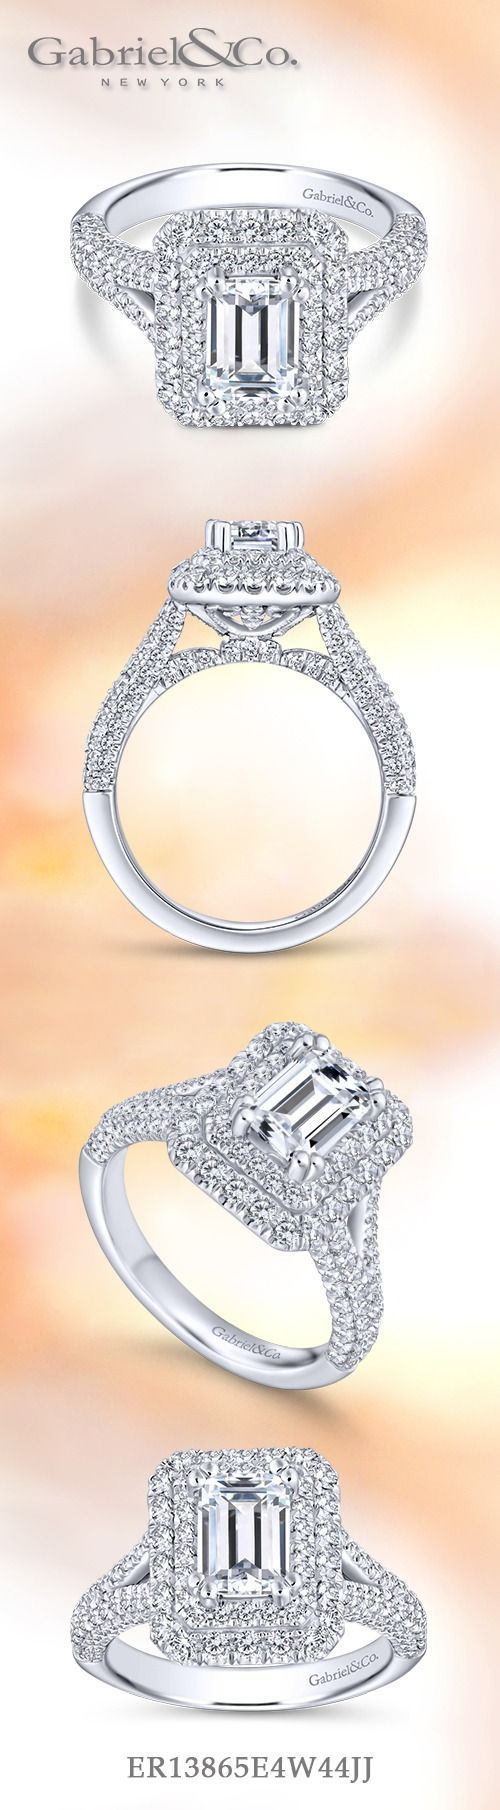 Gabriel & Co.-Voted #1 Most Preferred Fine Jewelry and Bridal Brand.  14k White Gold Emerald Cut Double Halo  Engagement Ring.